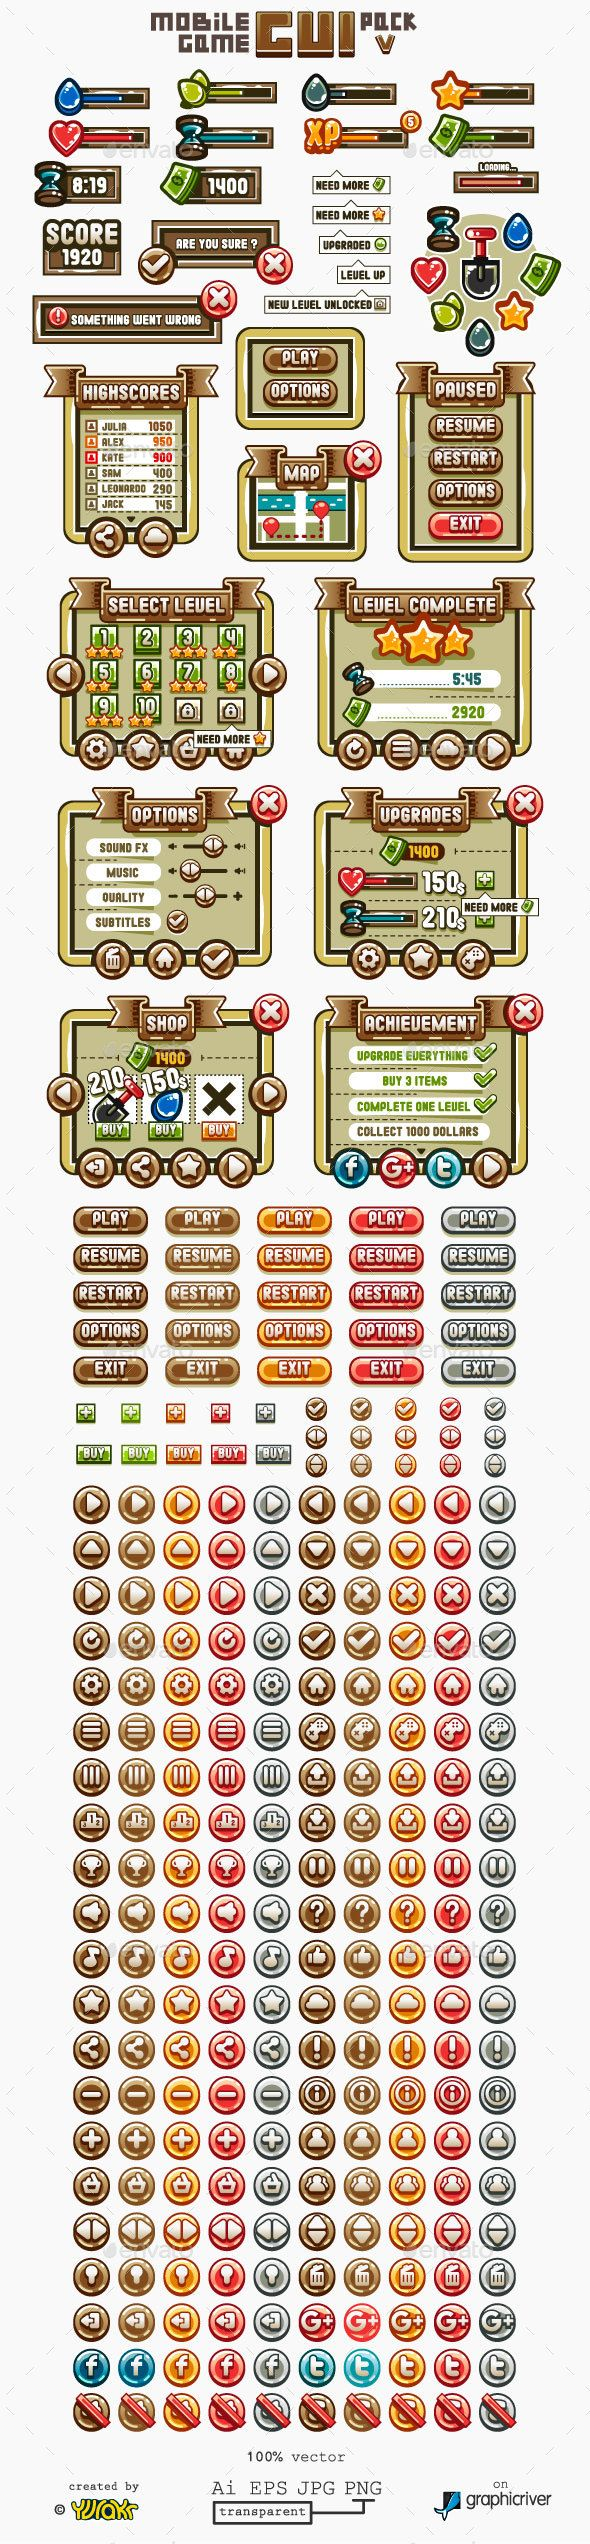 Mobile Game GUI Template Transparent PNG, JPG Image, Vector EPS, AI Illustrator. Download here: http://graphicriver.net/item/mobile-game-gui-pack-5/15504102?ref=ksioks